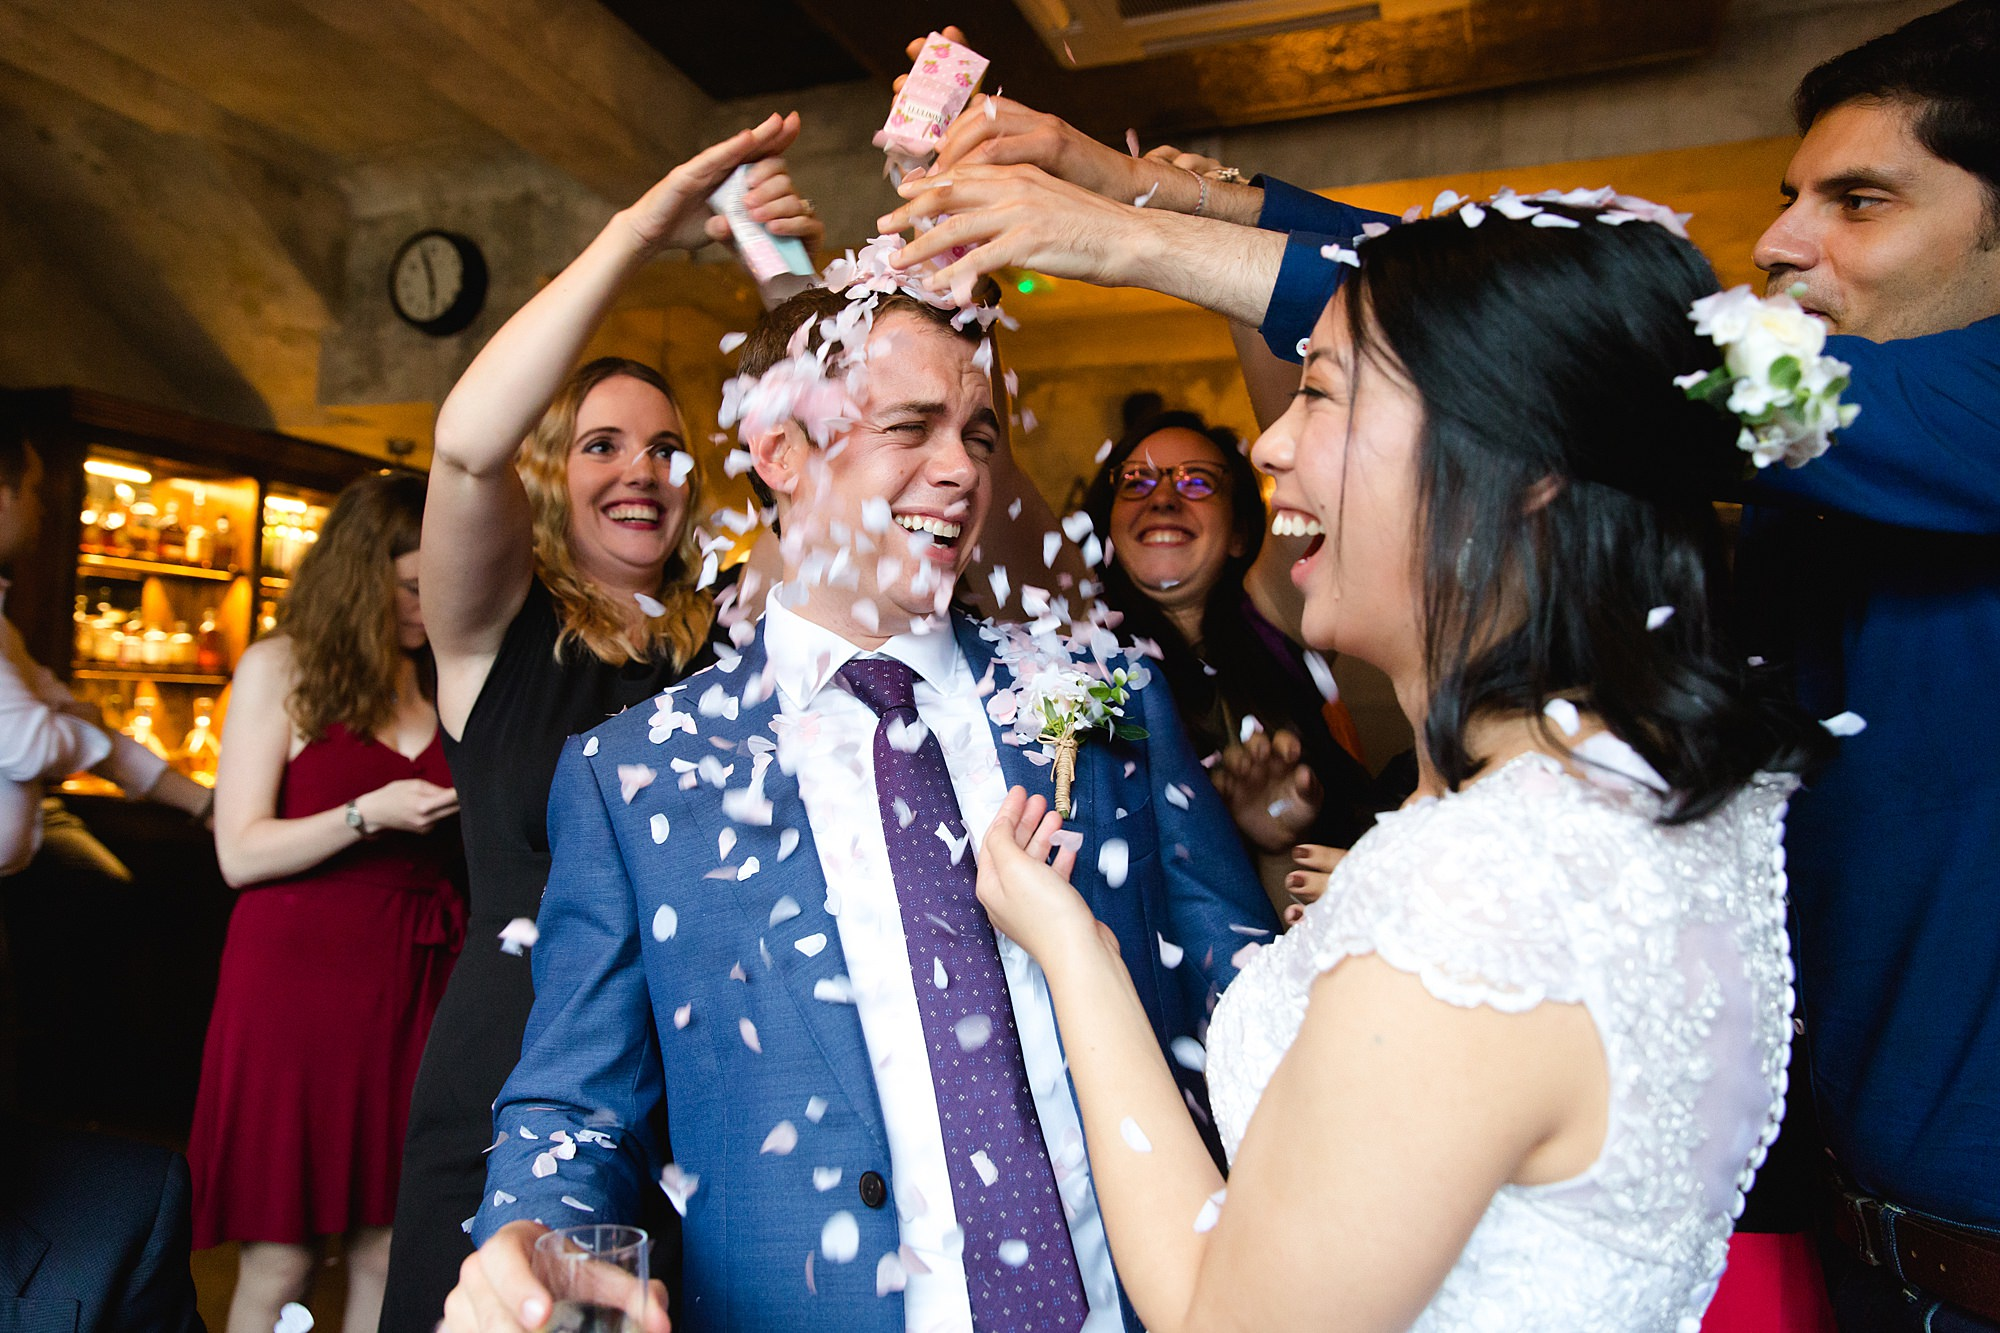 Wandsworth pub wedding bride and groom surprised with confetti